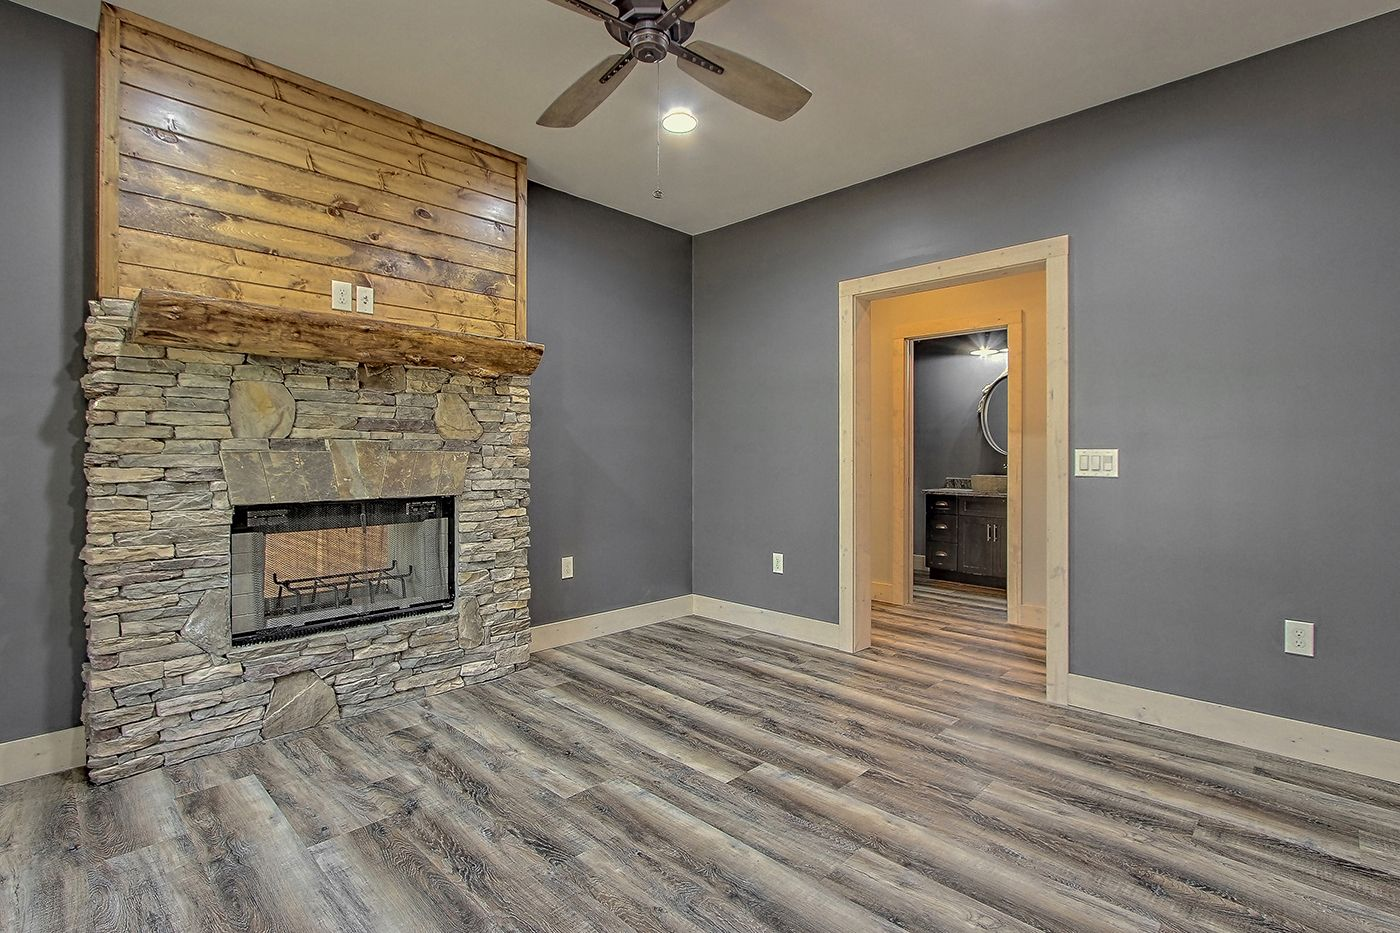 Home Office That Features A Stacked Stone Fireplace With A Raw Timber Mantel And Tongue And Groove Upper Culture Custom Homes Craftsman House Building A House